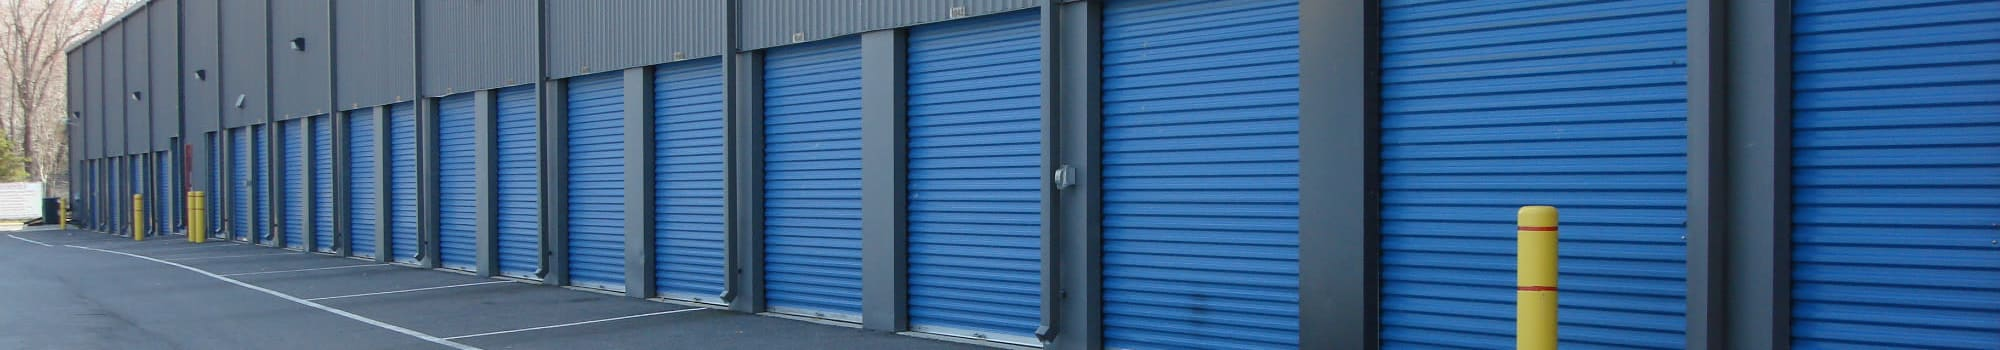 Contact us for your self storage needs in Triangle